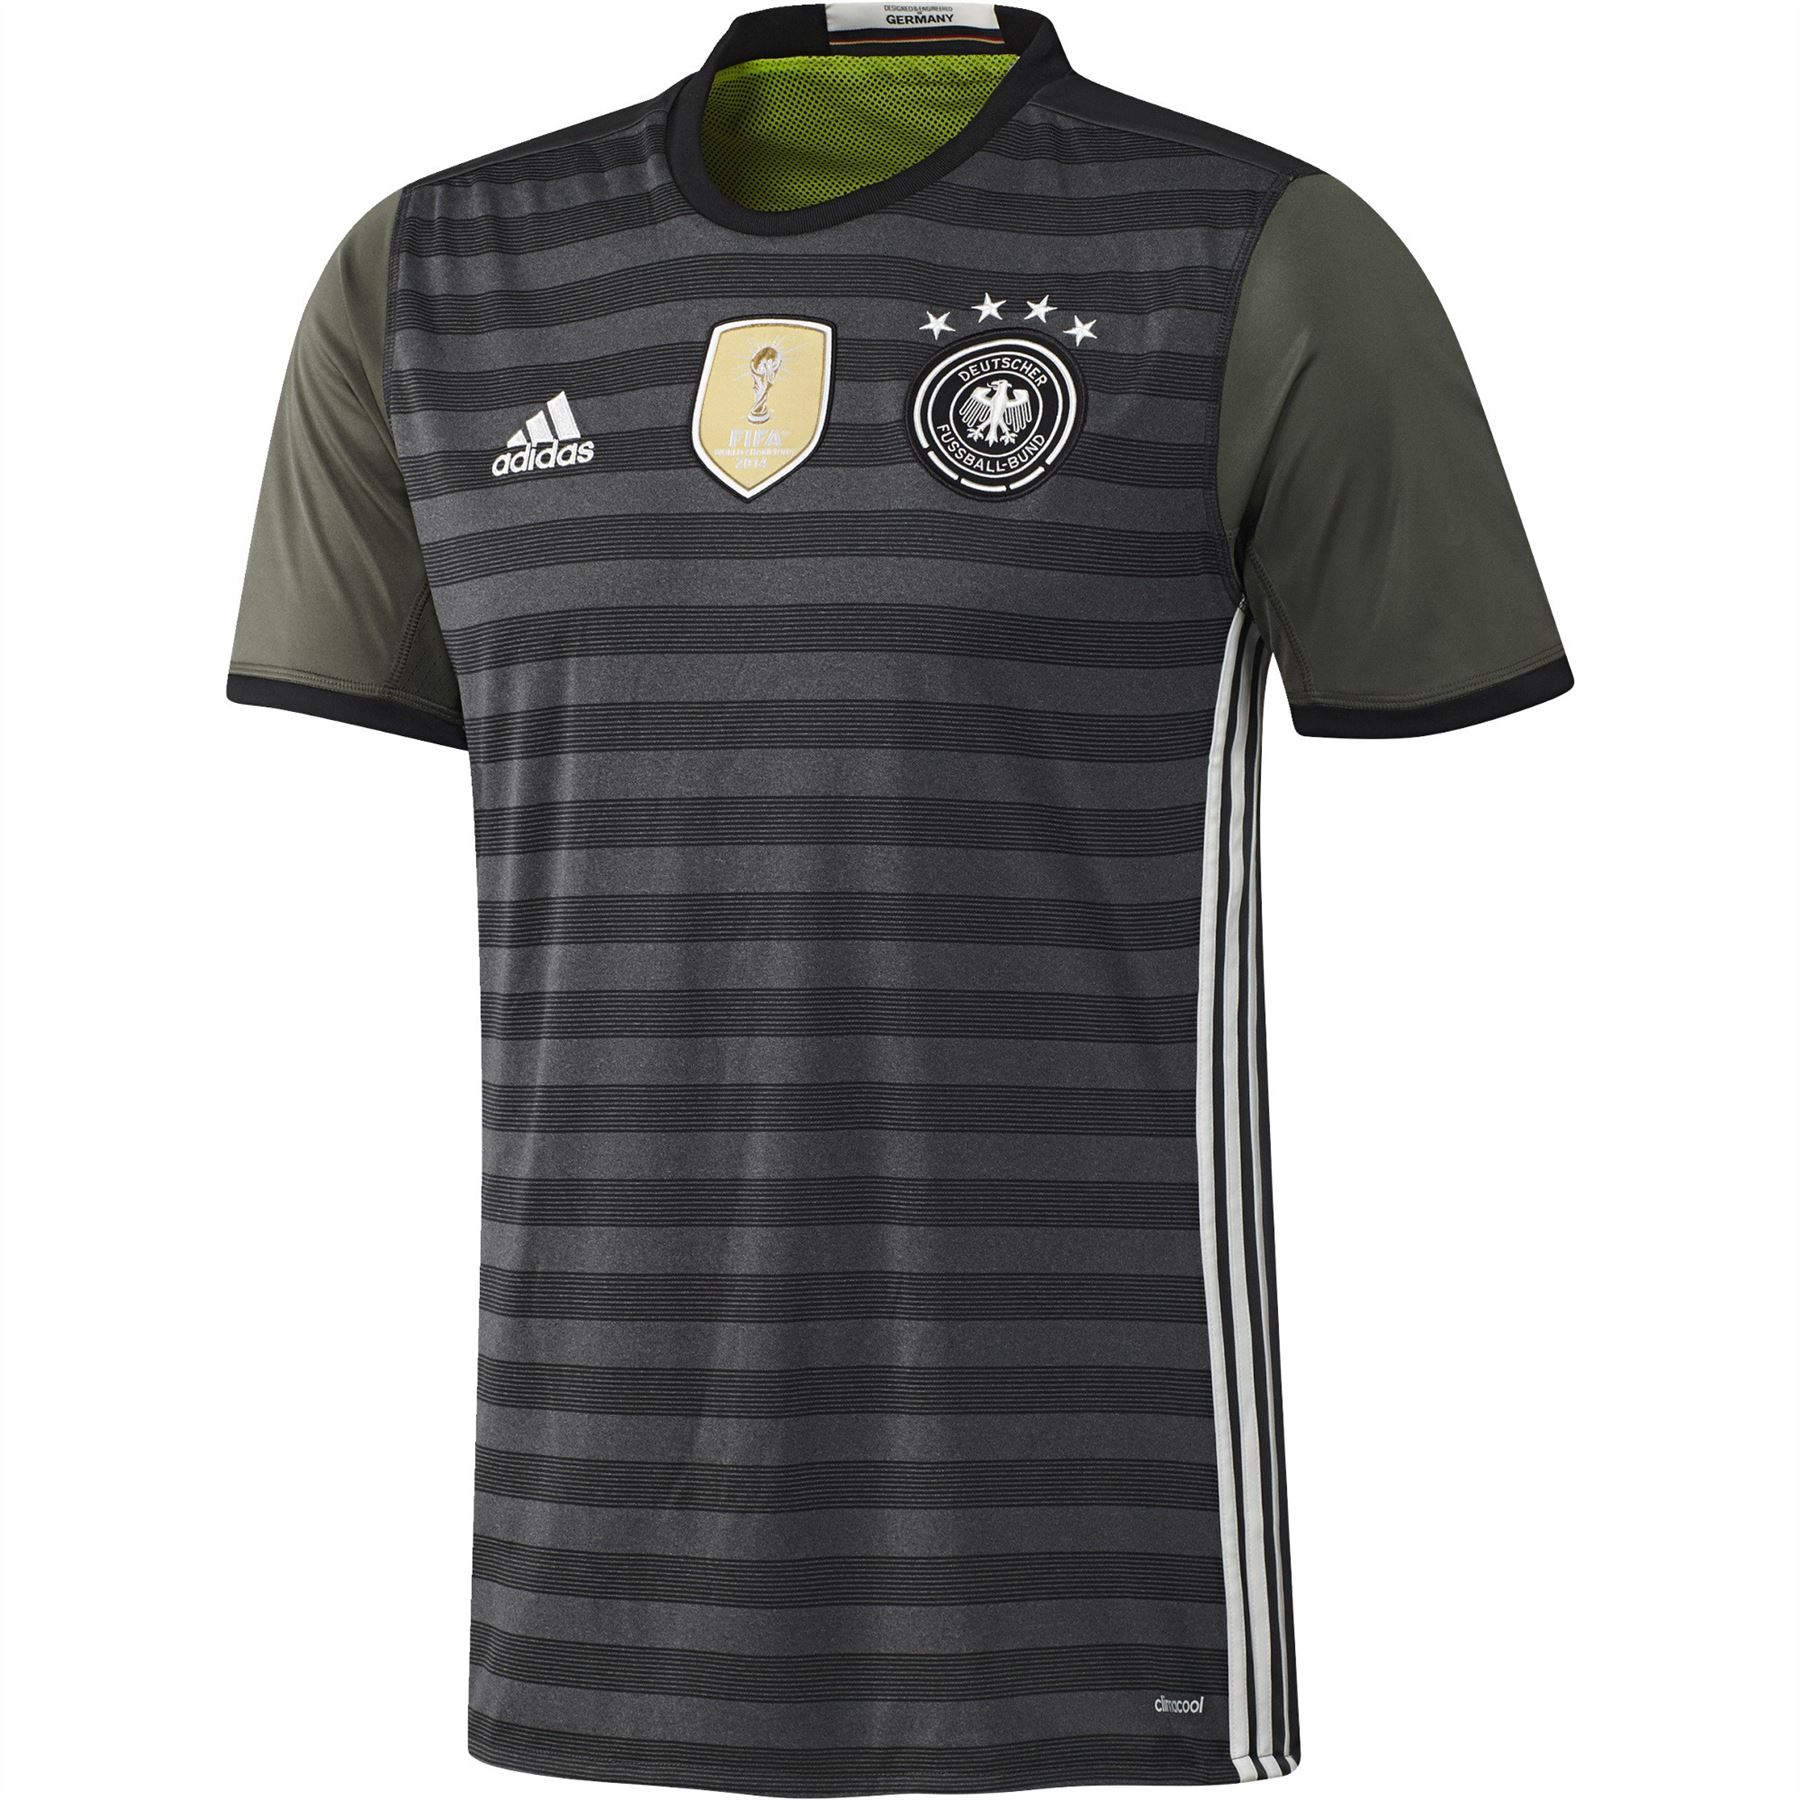 4455f40c5 adidas Germany Away Jersey 2016 2017 Mens Grey Football Soccer Shirt ...